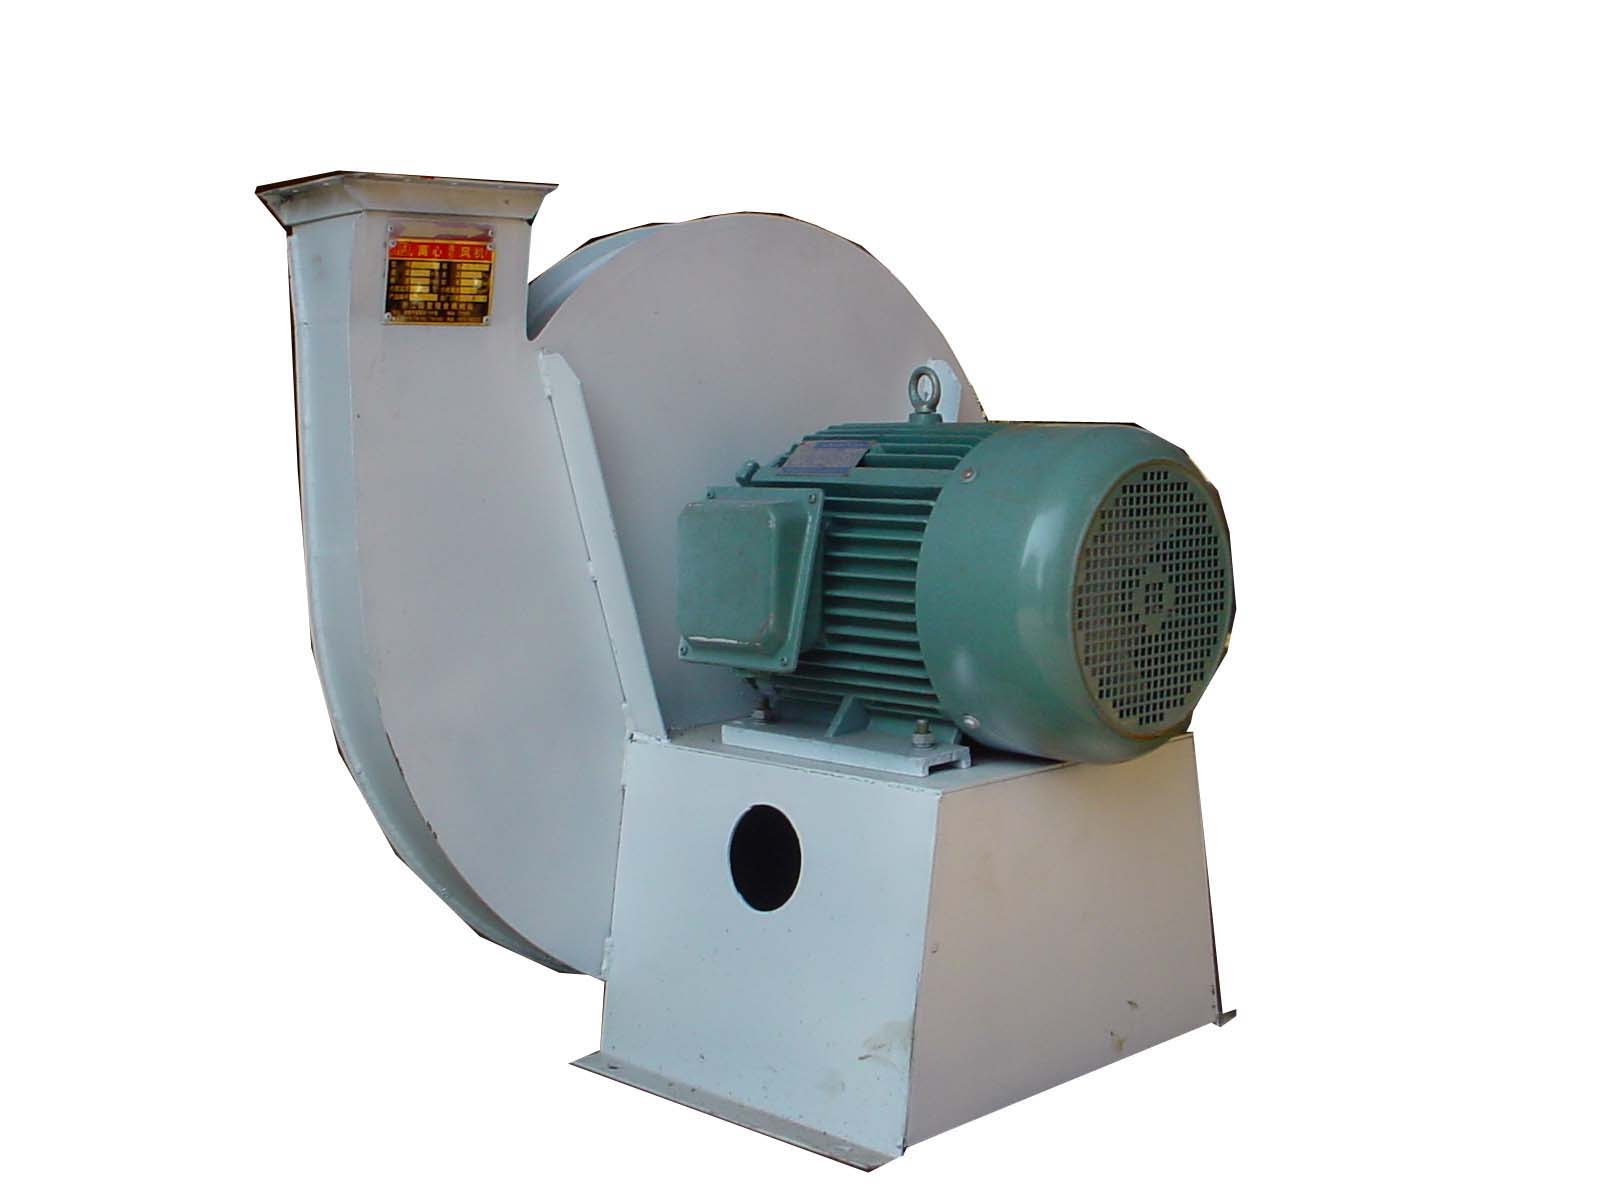 Centrifugal Fans And Blowers : Roof blower inch industrial turbine ventilation